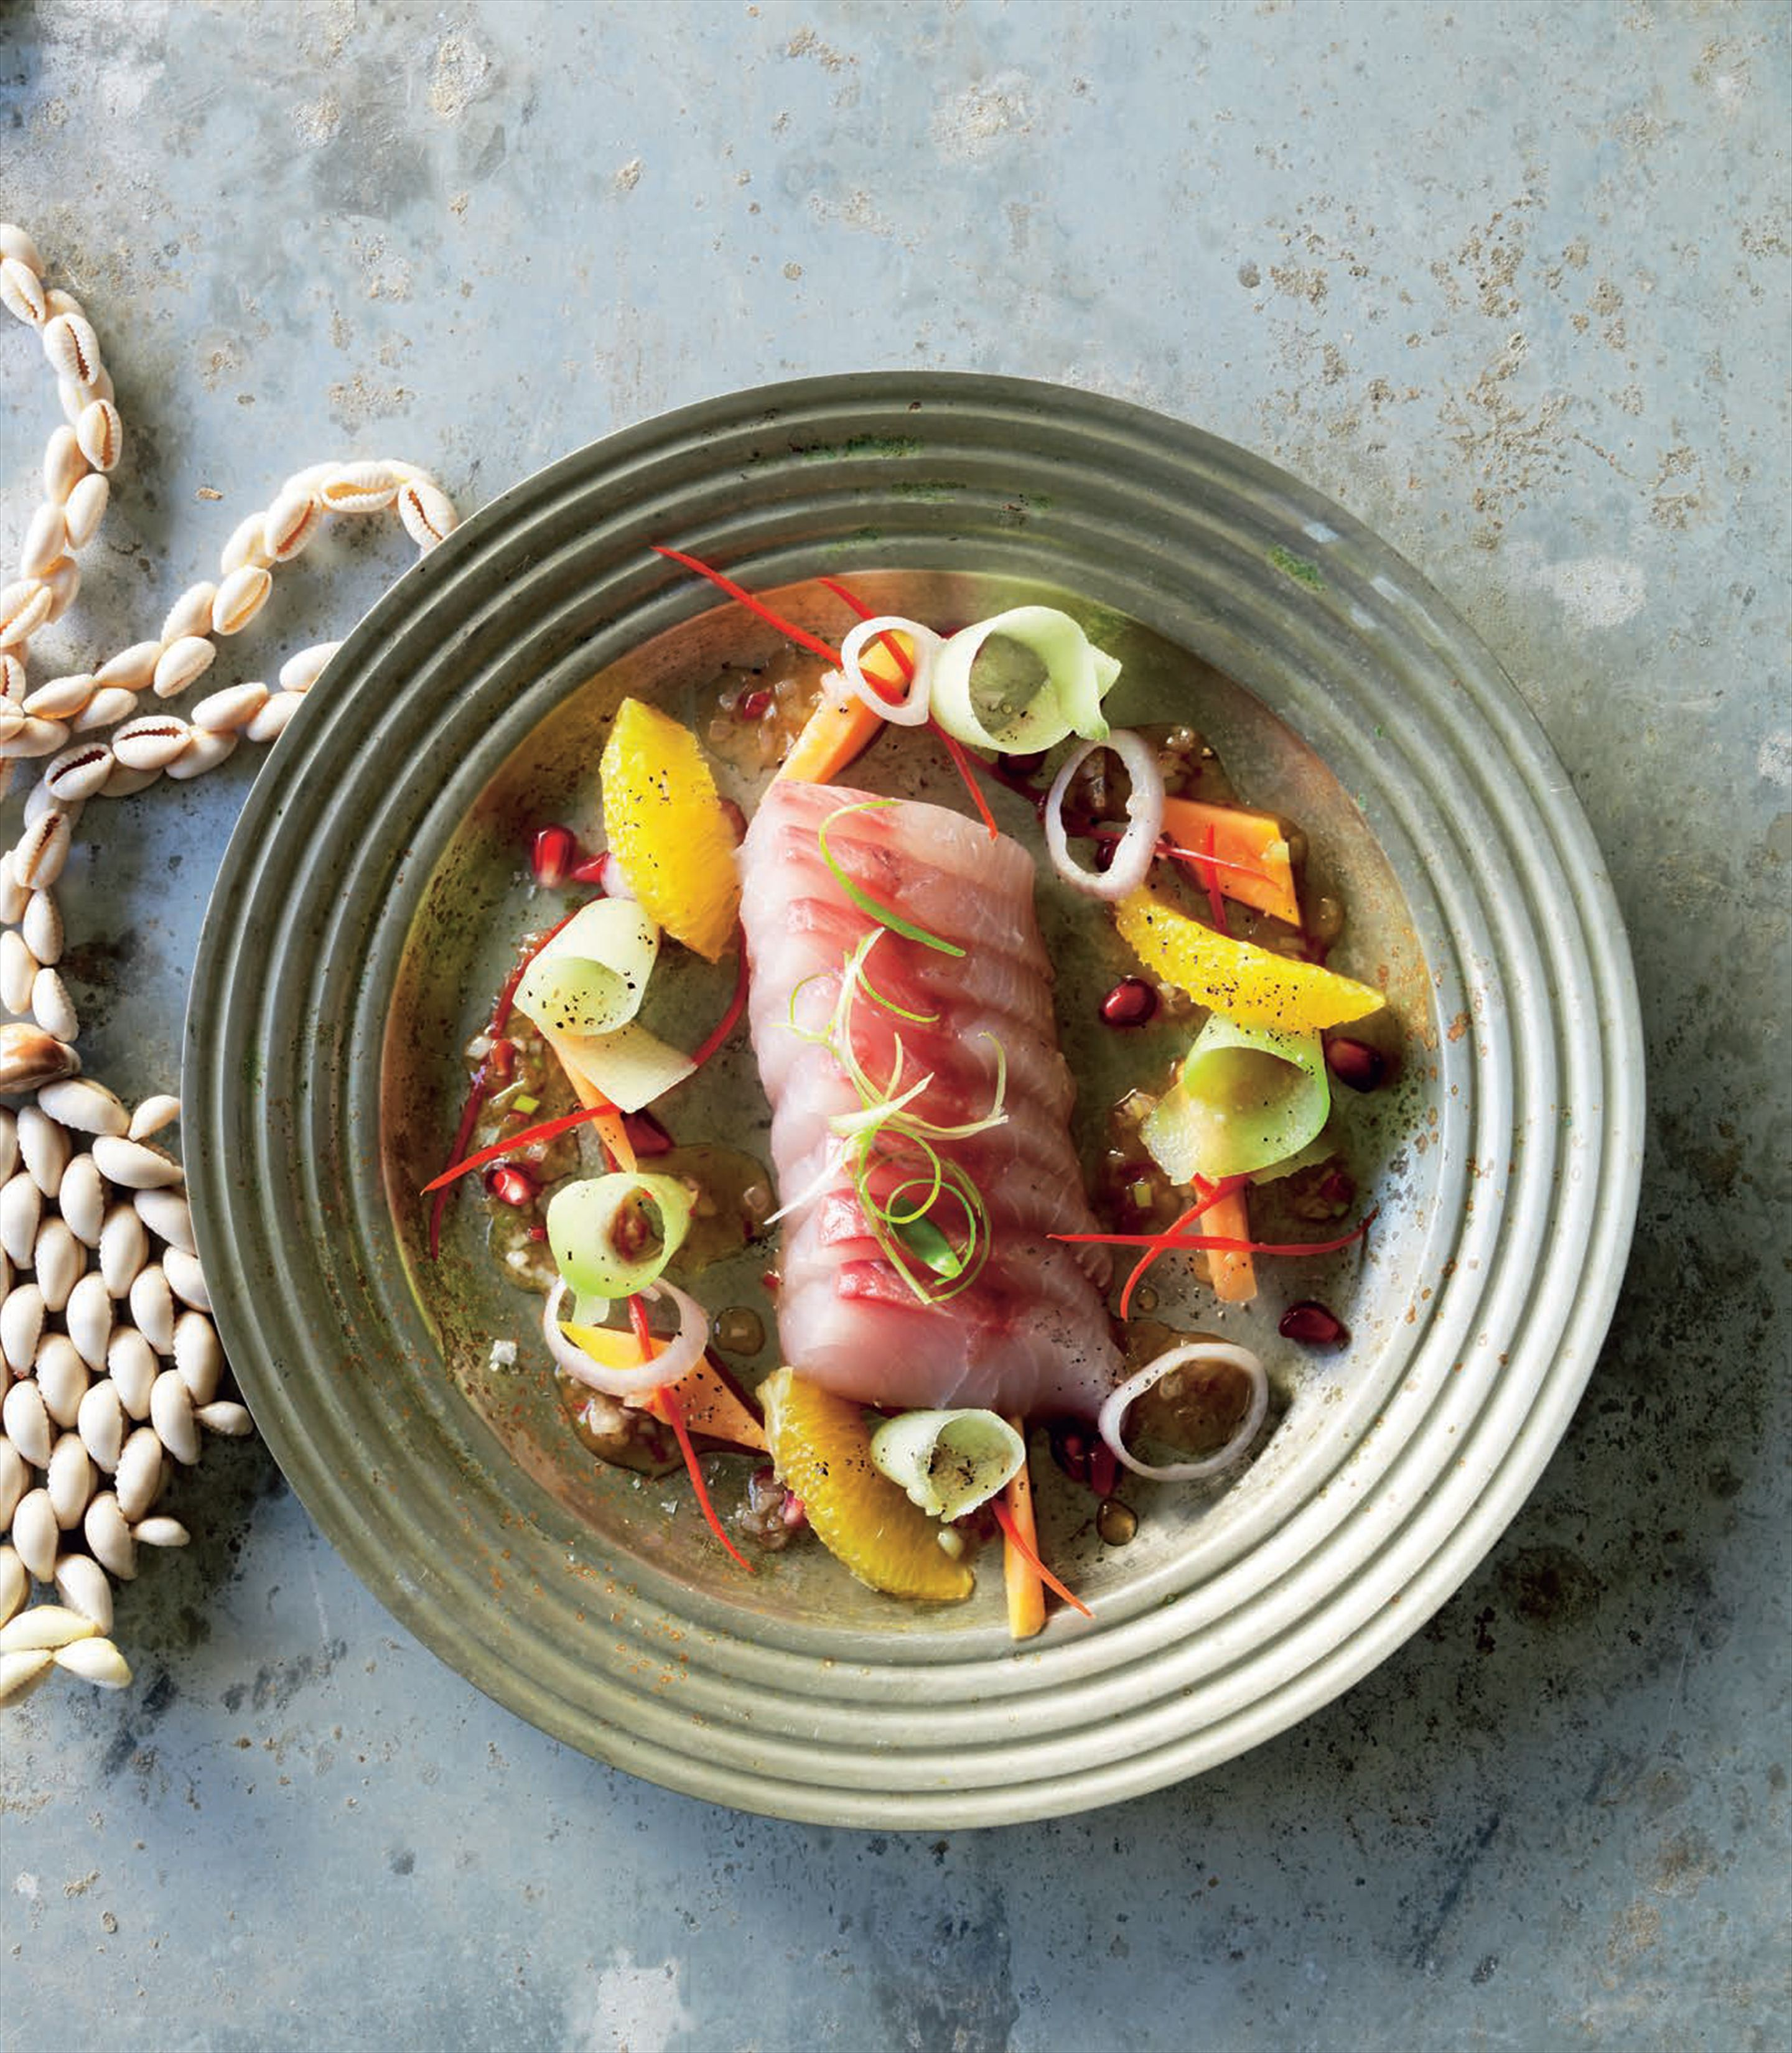 Raw trevally salad with pomegranate